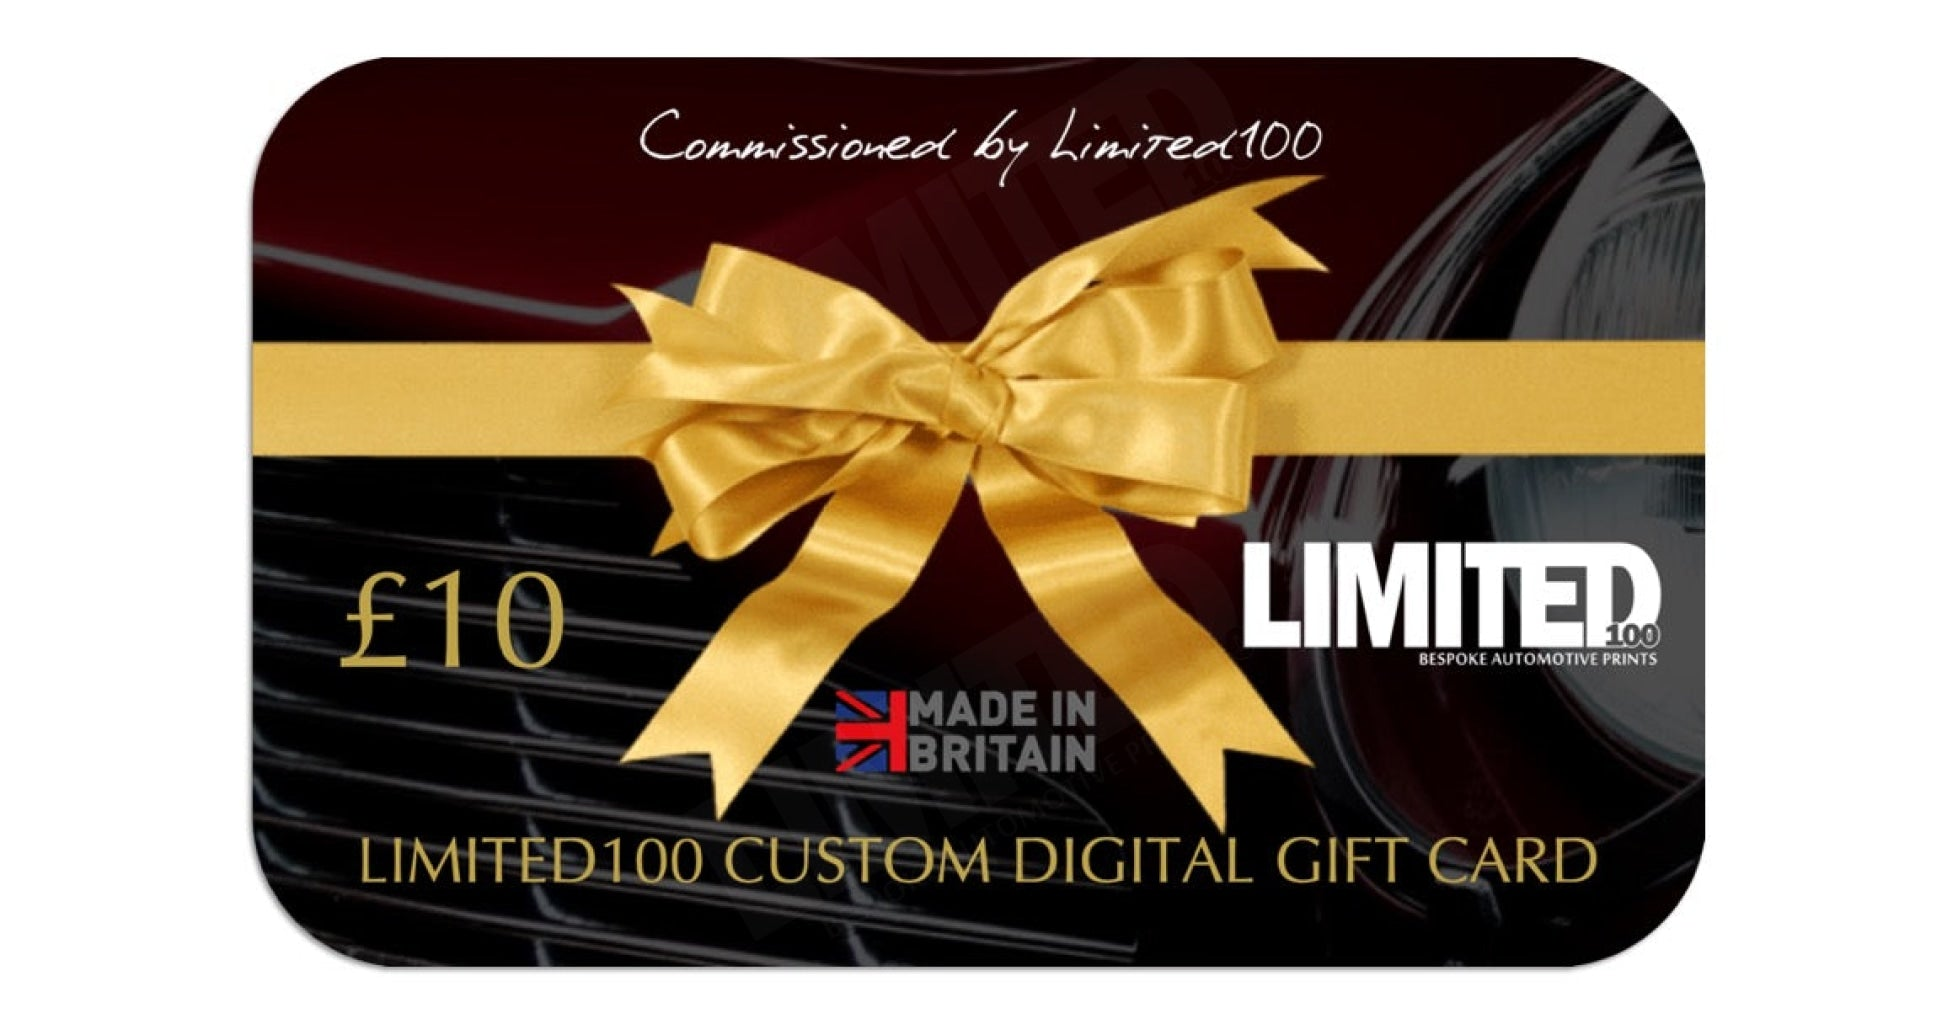 Limited100 Digital Gift Card